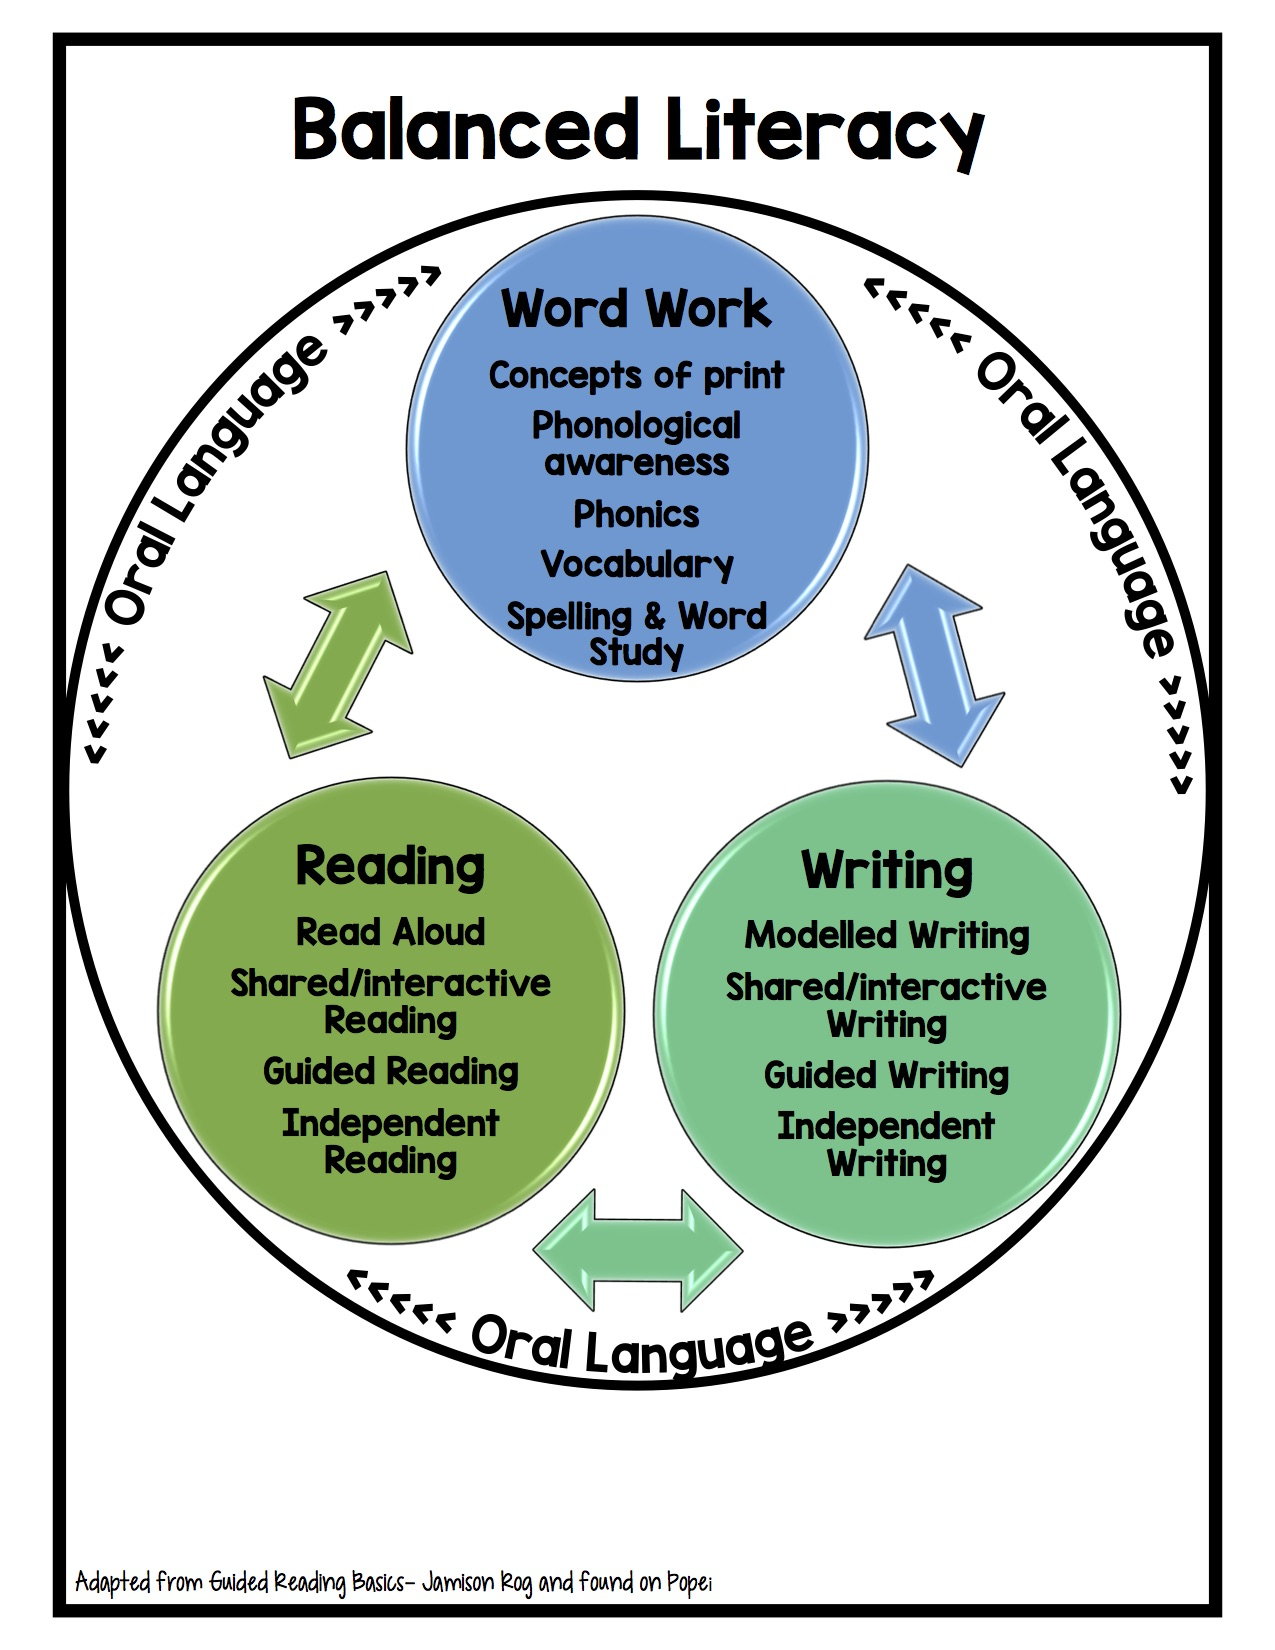 balanced literacy framework School district created on 7/25/07 - 1 - last revision 10/27/08 monticello  central school district balanced literacy framework grades k-5.